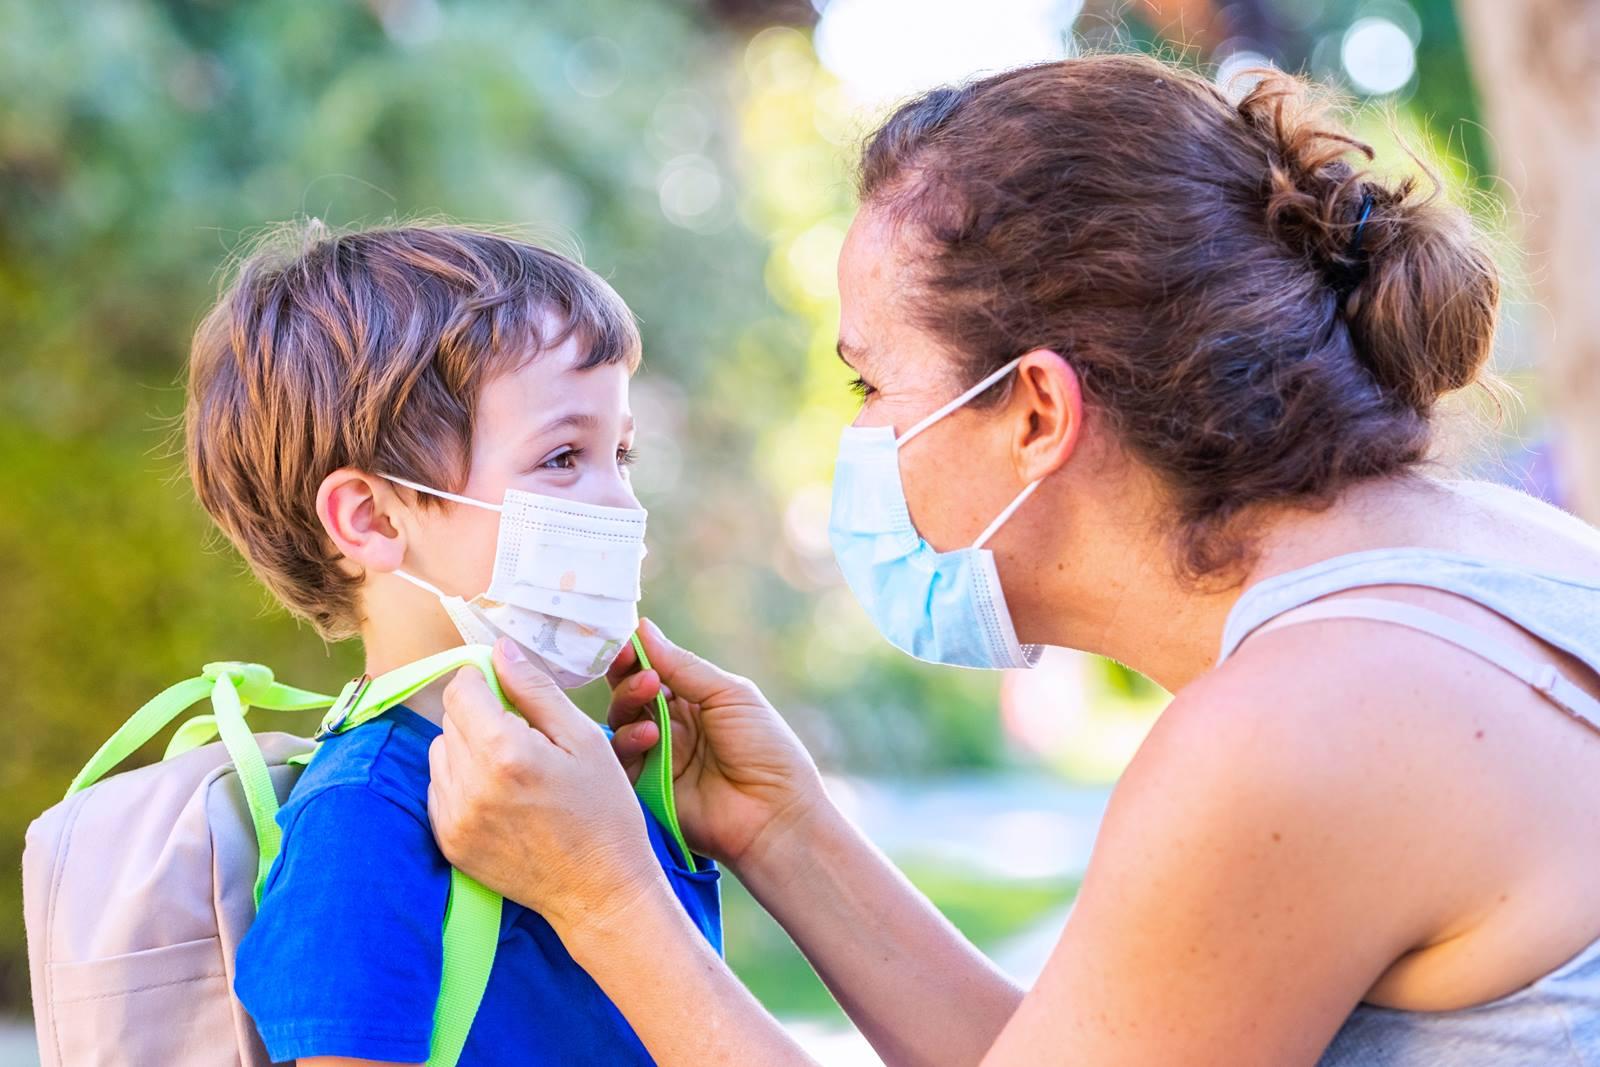 How to help kids adjust to wearing a mask